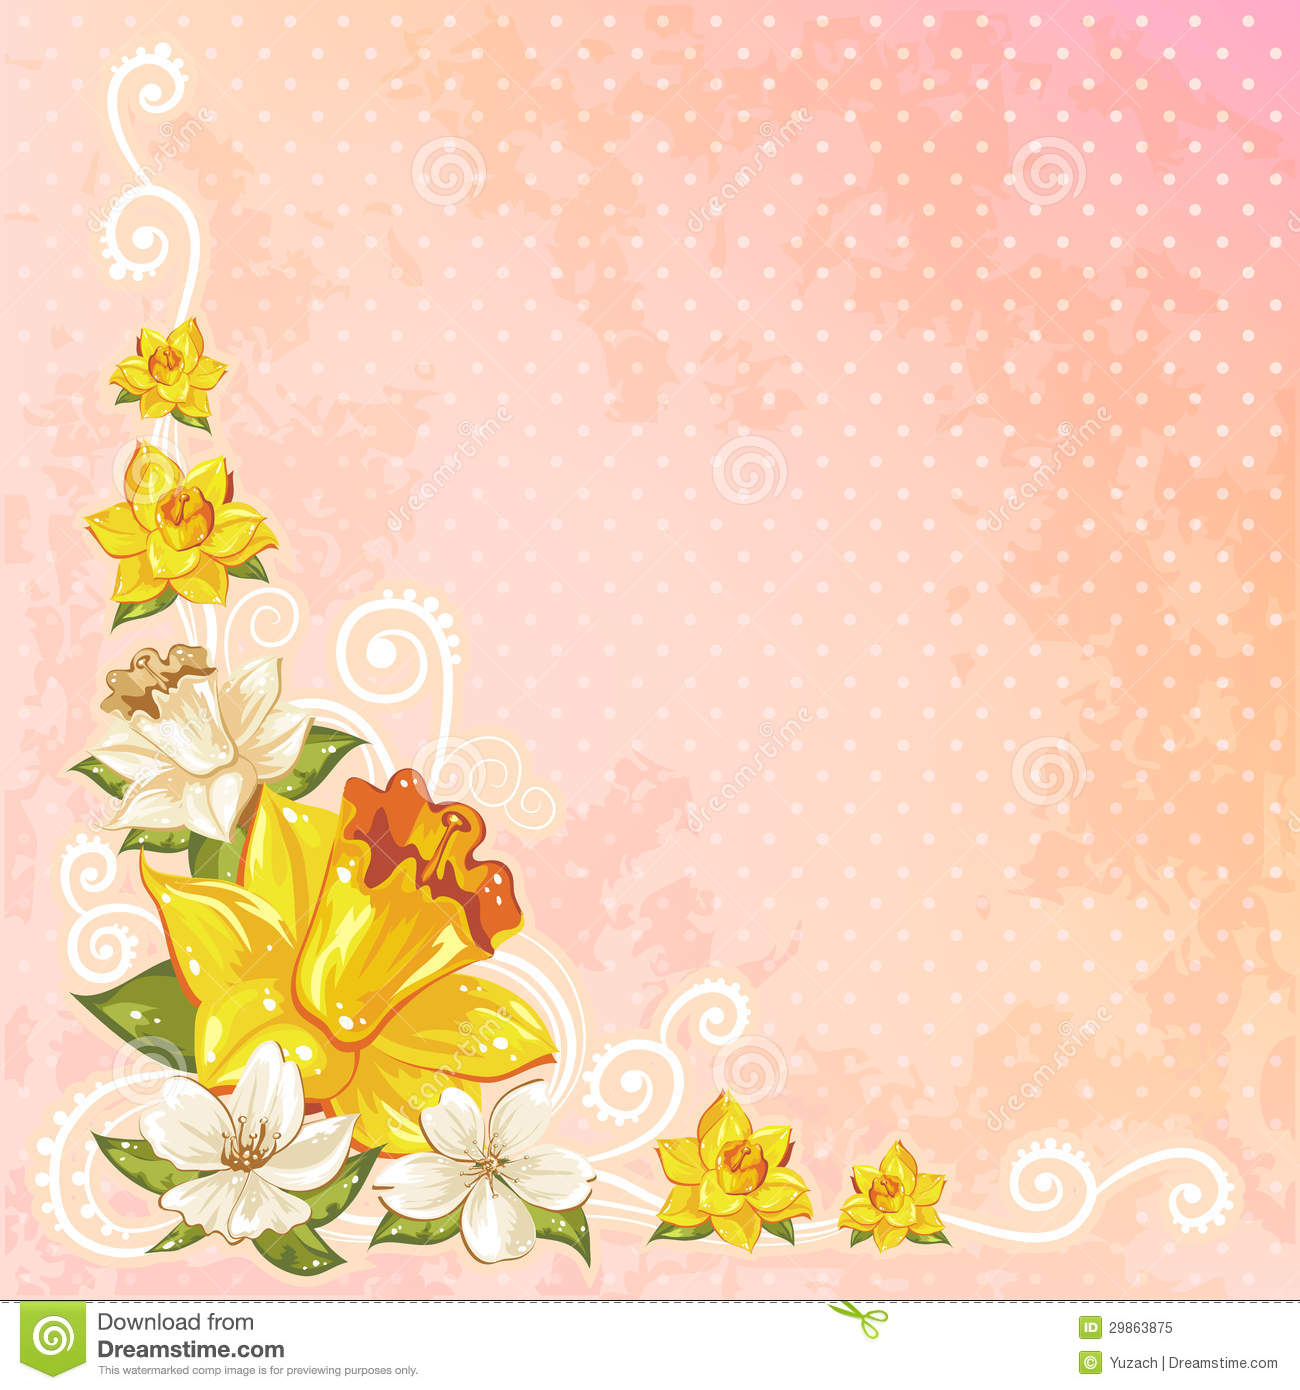 Beautiful Spring Floral Postcard Royalty Free Stock Photo.